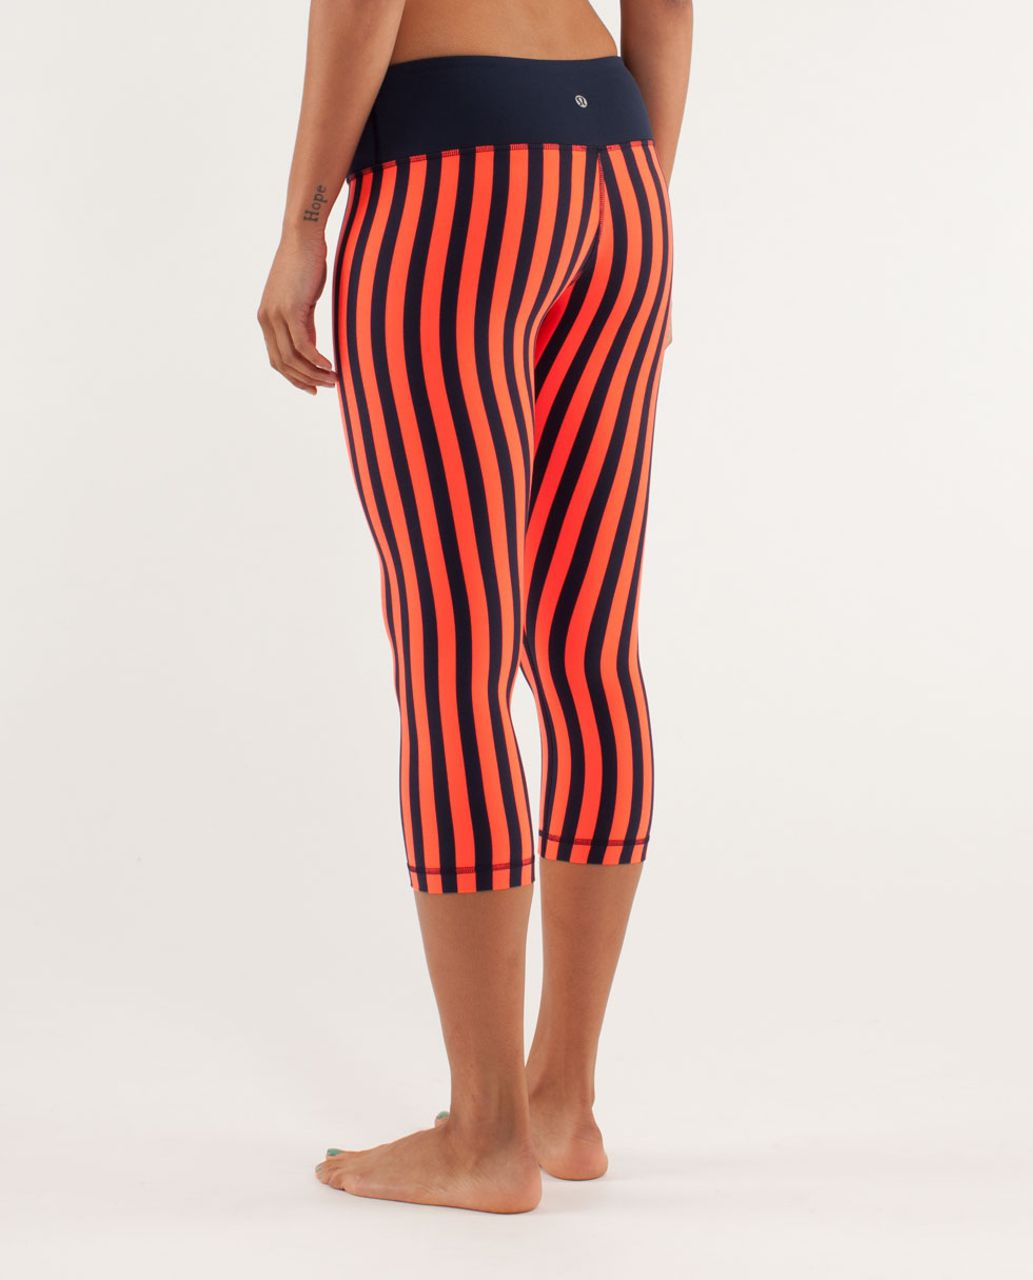 Lululemon Wunder Under Crop - Sea Stripe Light Flare Inkwell / Inkwell